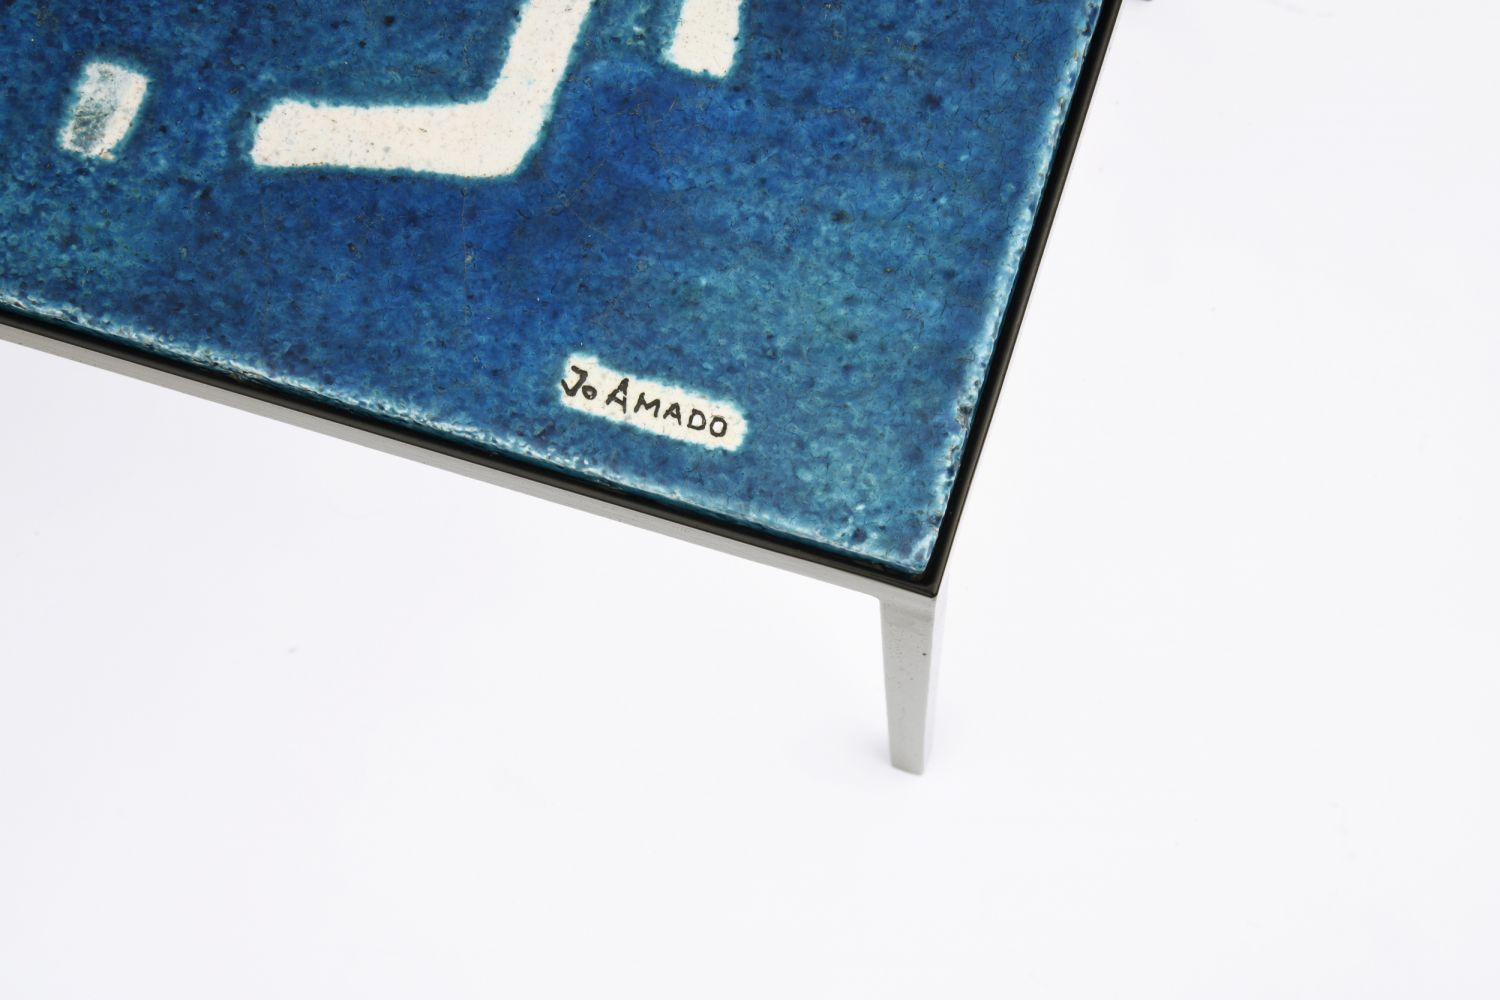 Jo Amado's ceramic coffee table, detailed view of ceramic top showing signature